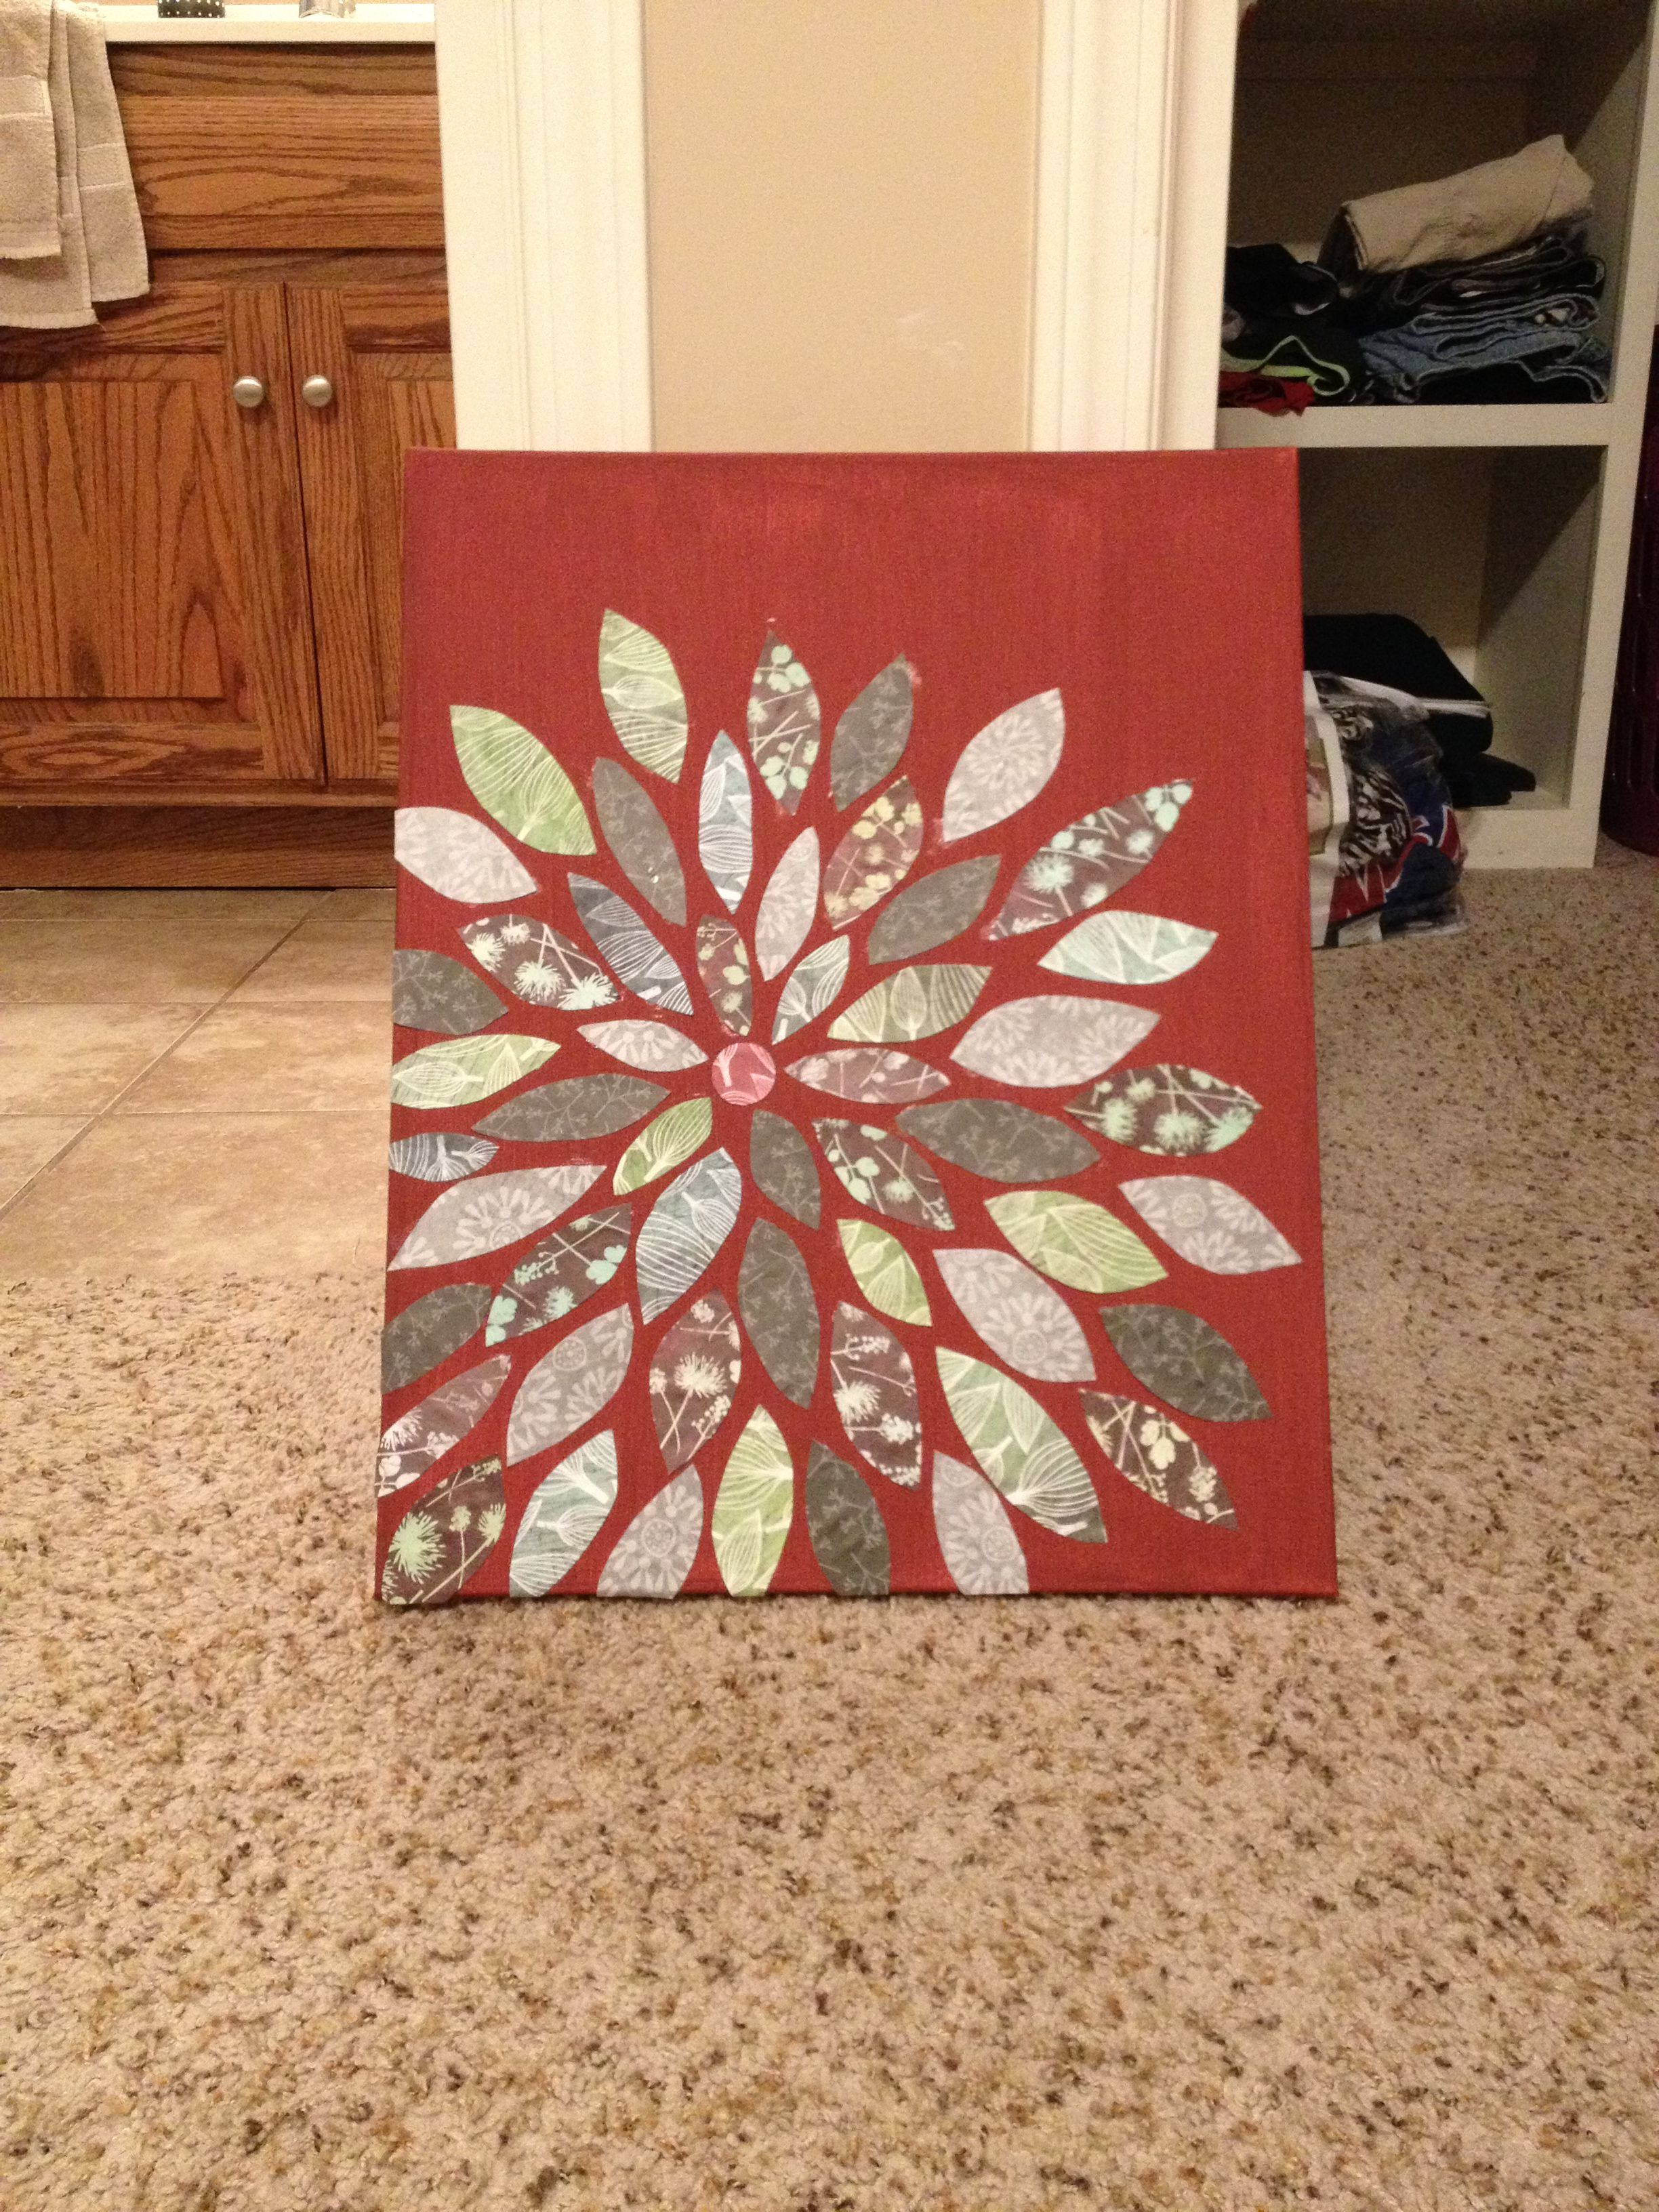 Canvas flower wall art i love the red background with black and